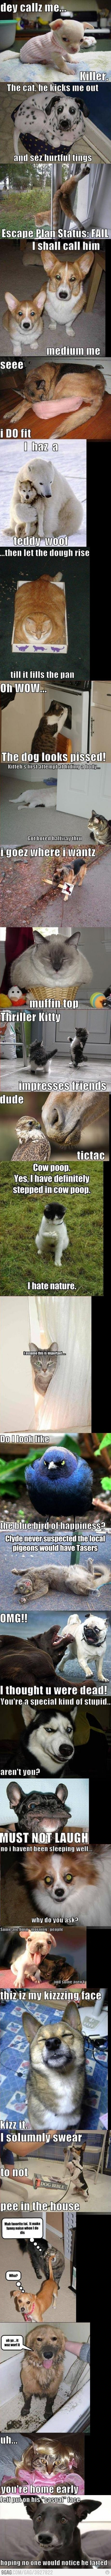 funny animals!!